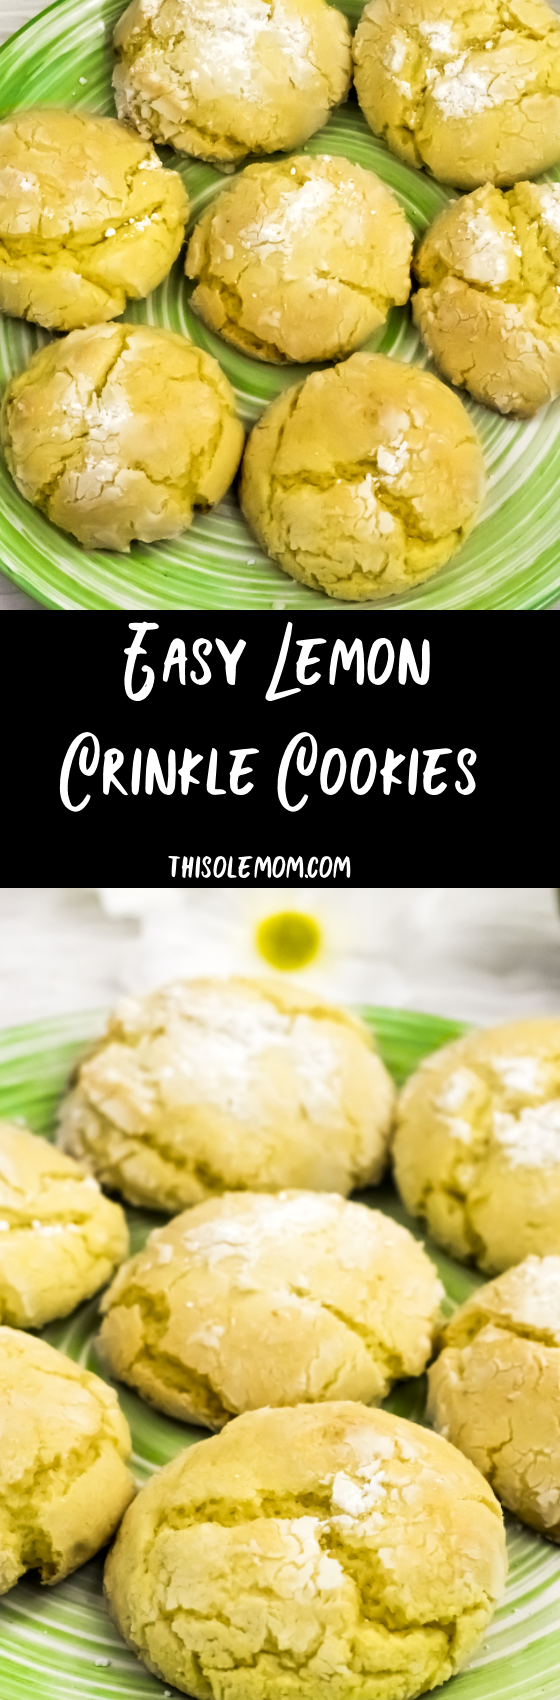 Easy Lemon Crinkle Cookies ... chewy and delicious!